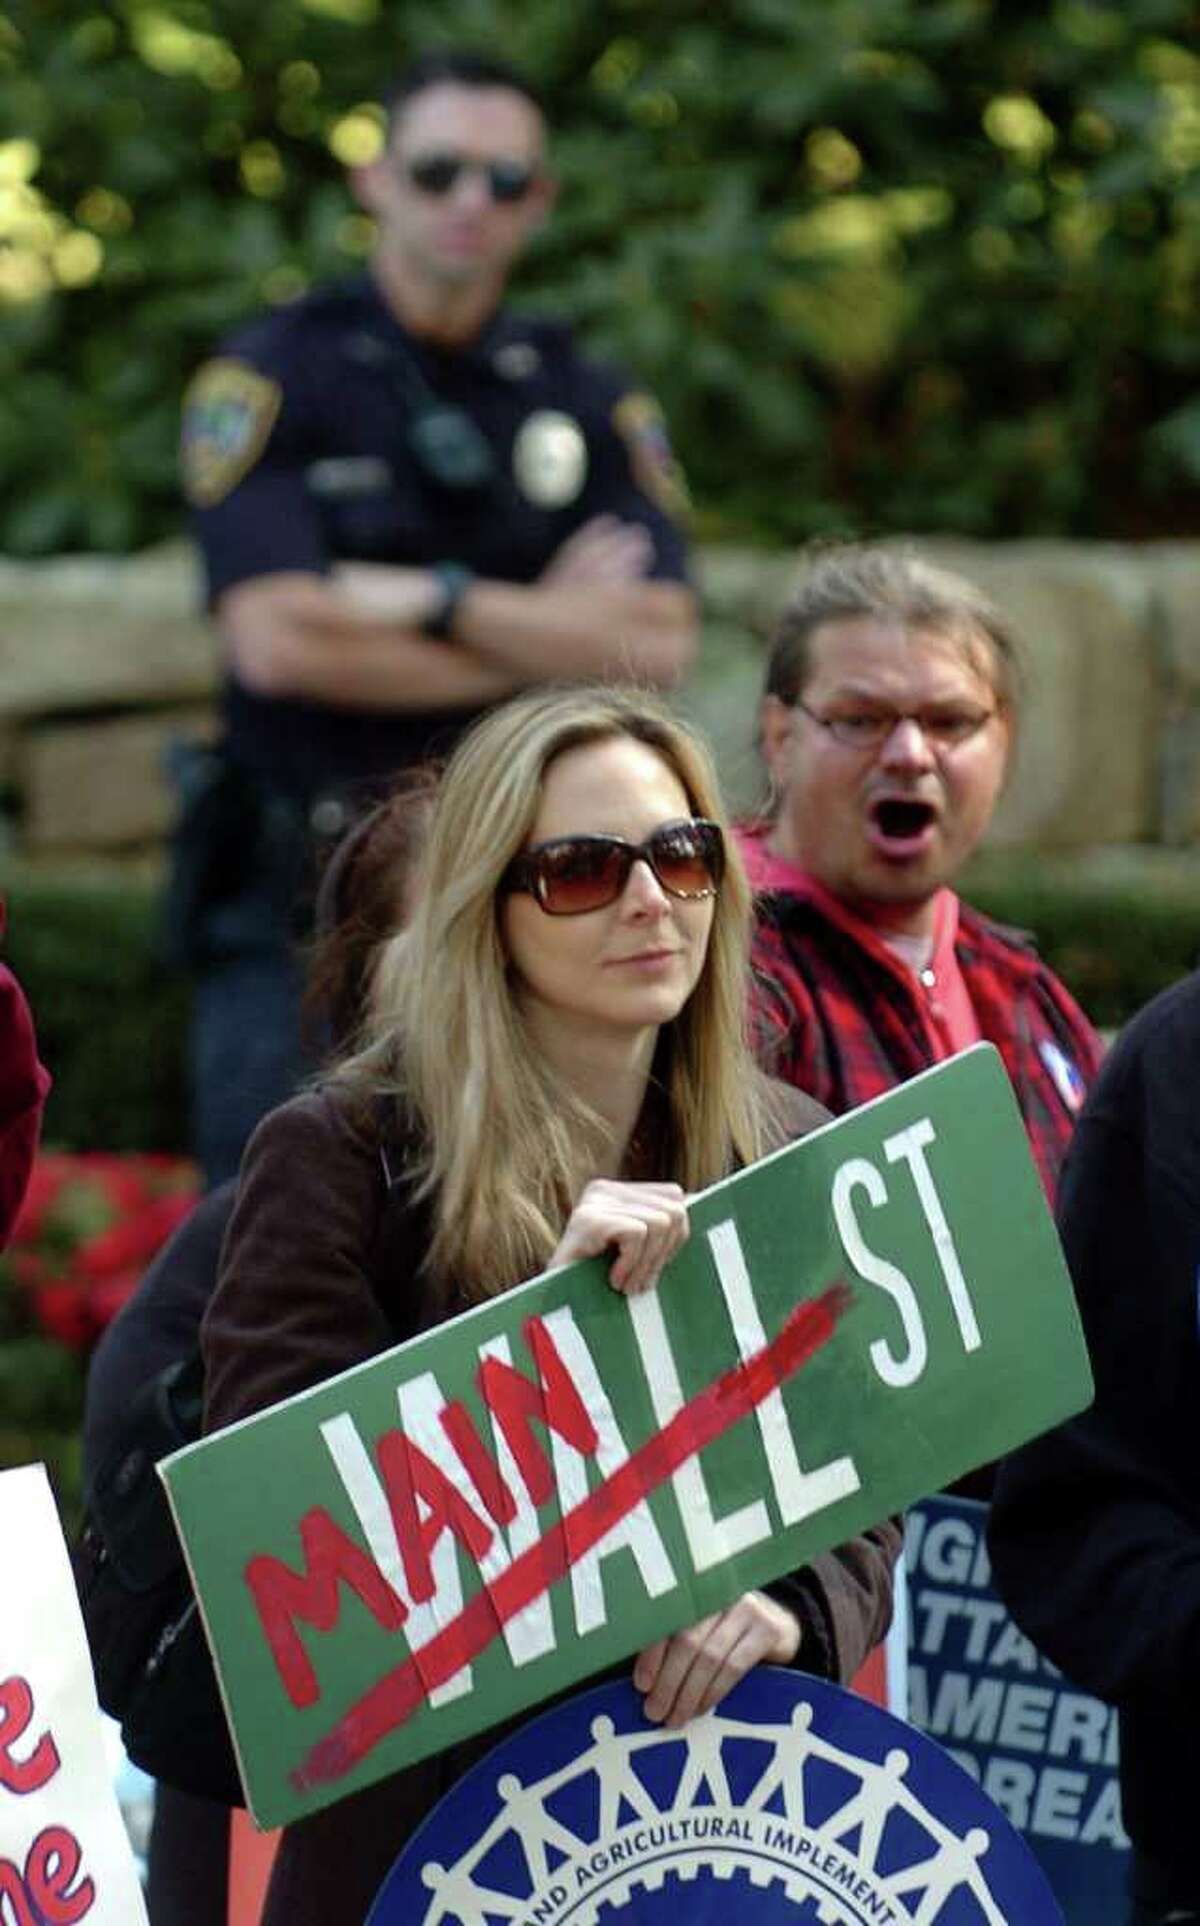 Katie Hern, of West Hartford, stands in front of GE CEO Jeff Immelt's home, in New Canaan, Conn. to protest with others from Connecticut Working Families on October 22, 2011.